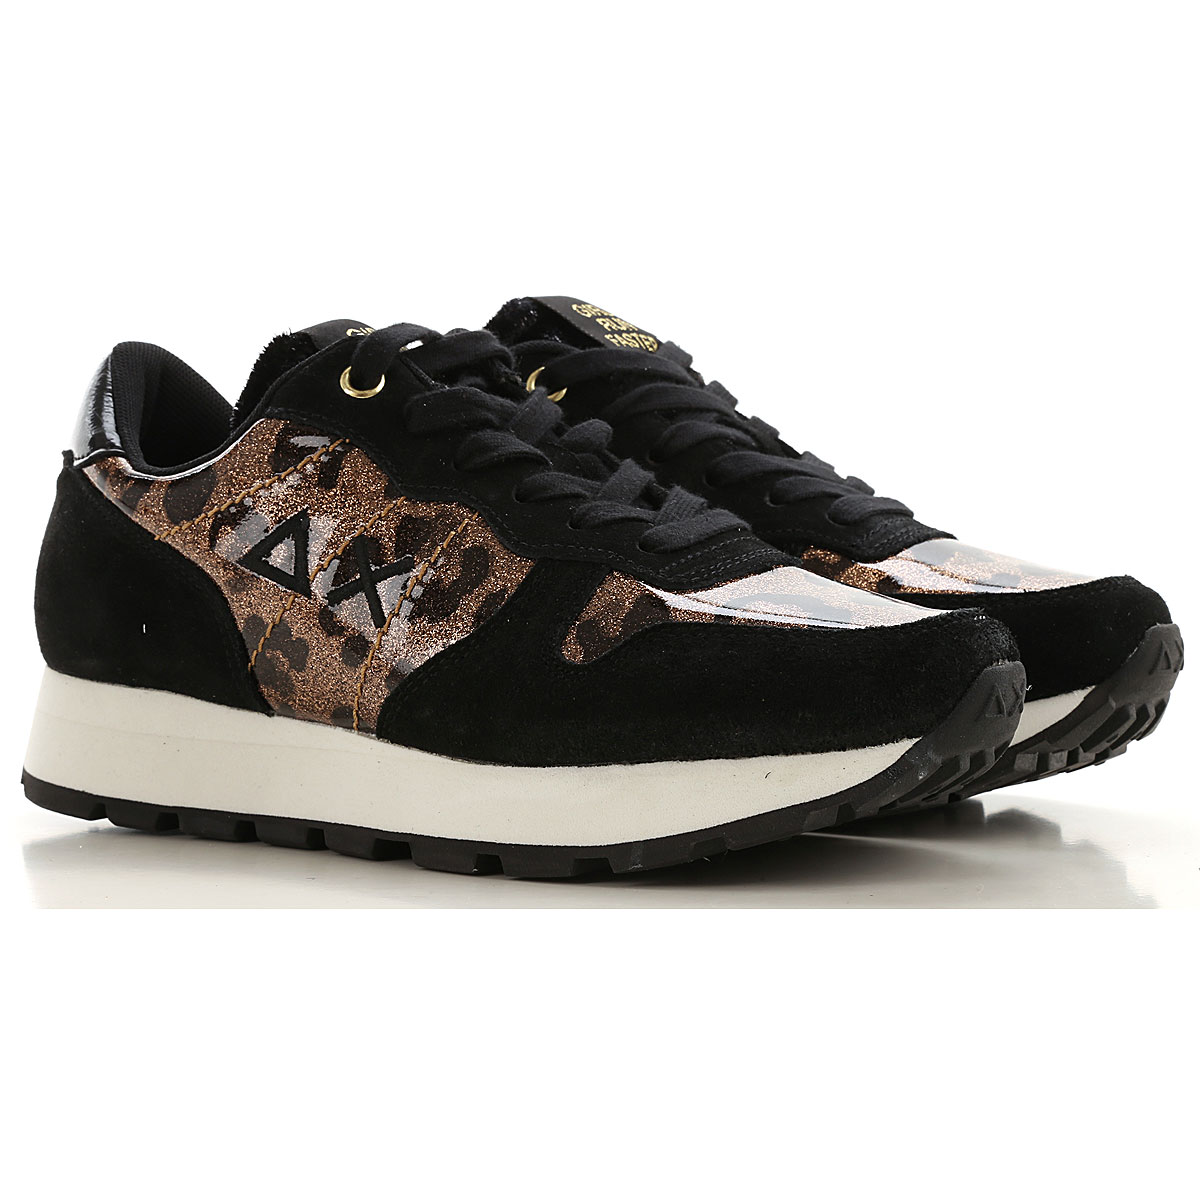 Sun68 Sneakers for Women On Sale, Black, Leather, 2019, 10 5 6 7 9